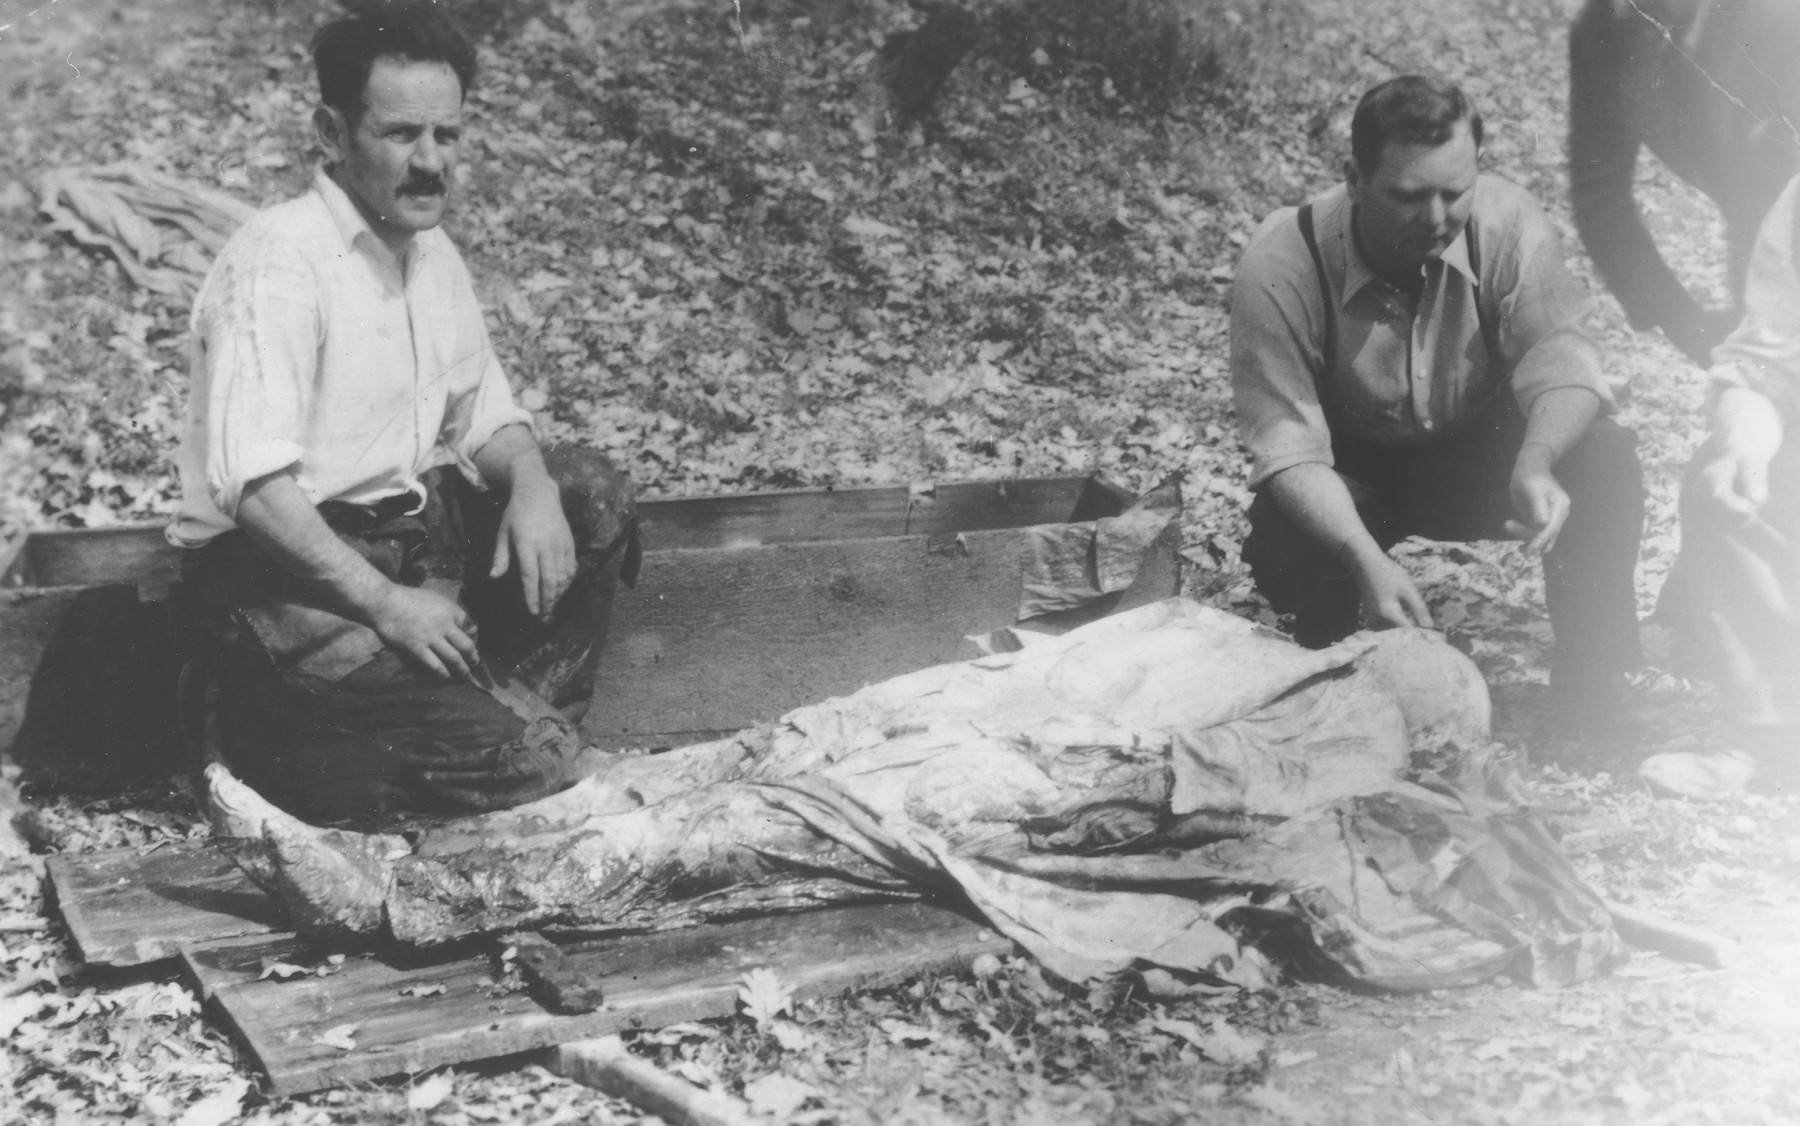 Jozsef Gecse, a Hungarian Nazi who was active in the ghetto, aids a Romanian man examine the body of a Jew killed in the ghetto in Dej.